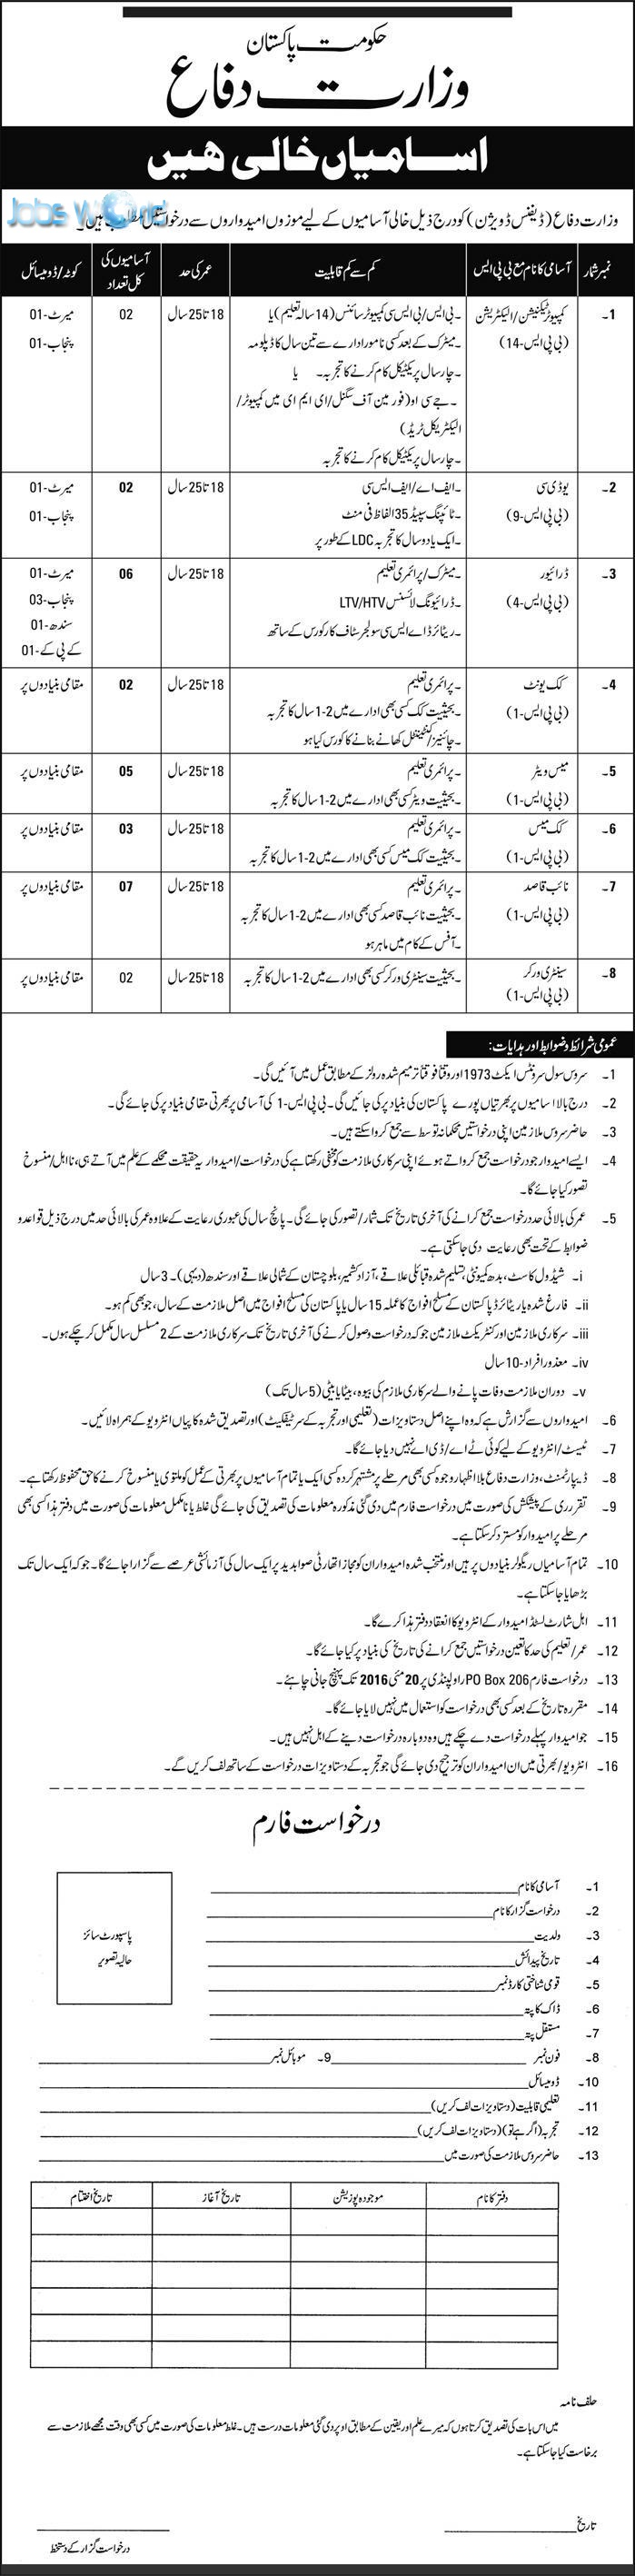 jobs in ministry of defence islamabad 2016 application form jobsworld jobs in ministry of defence islamabad 2016 application form